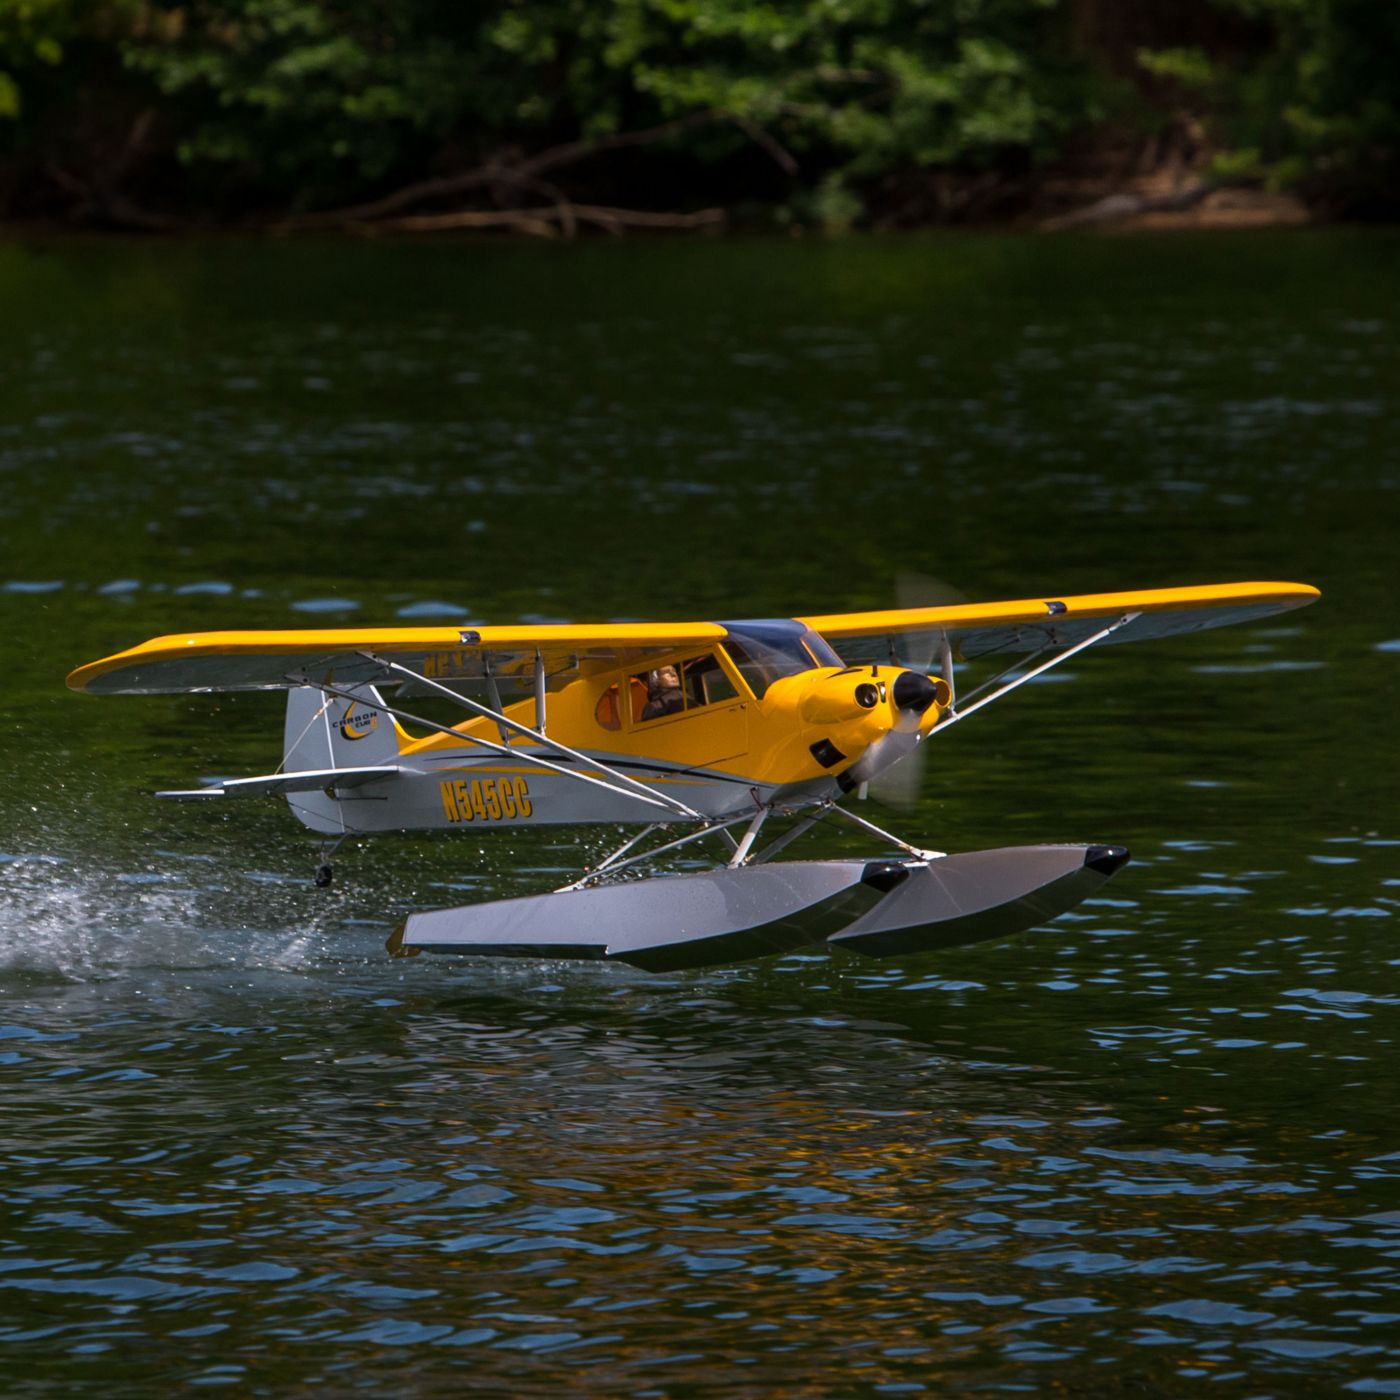 Hangar 9 Carbon Cub RC Airplane: On the lake.